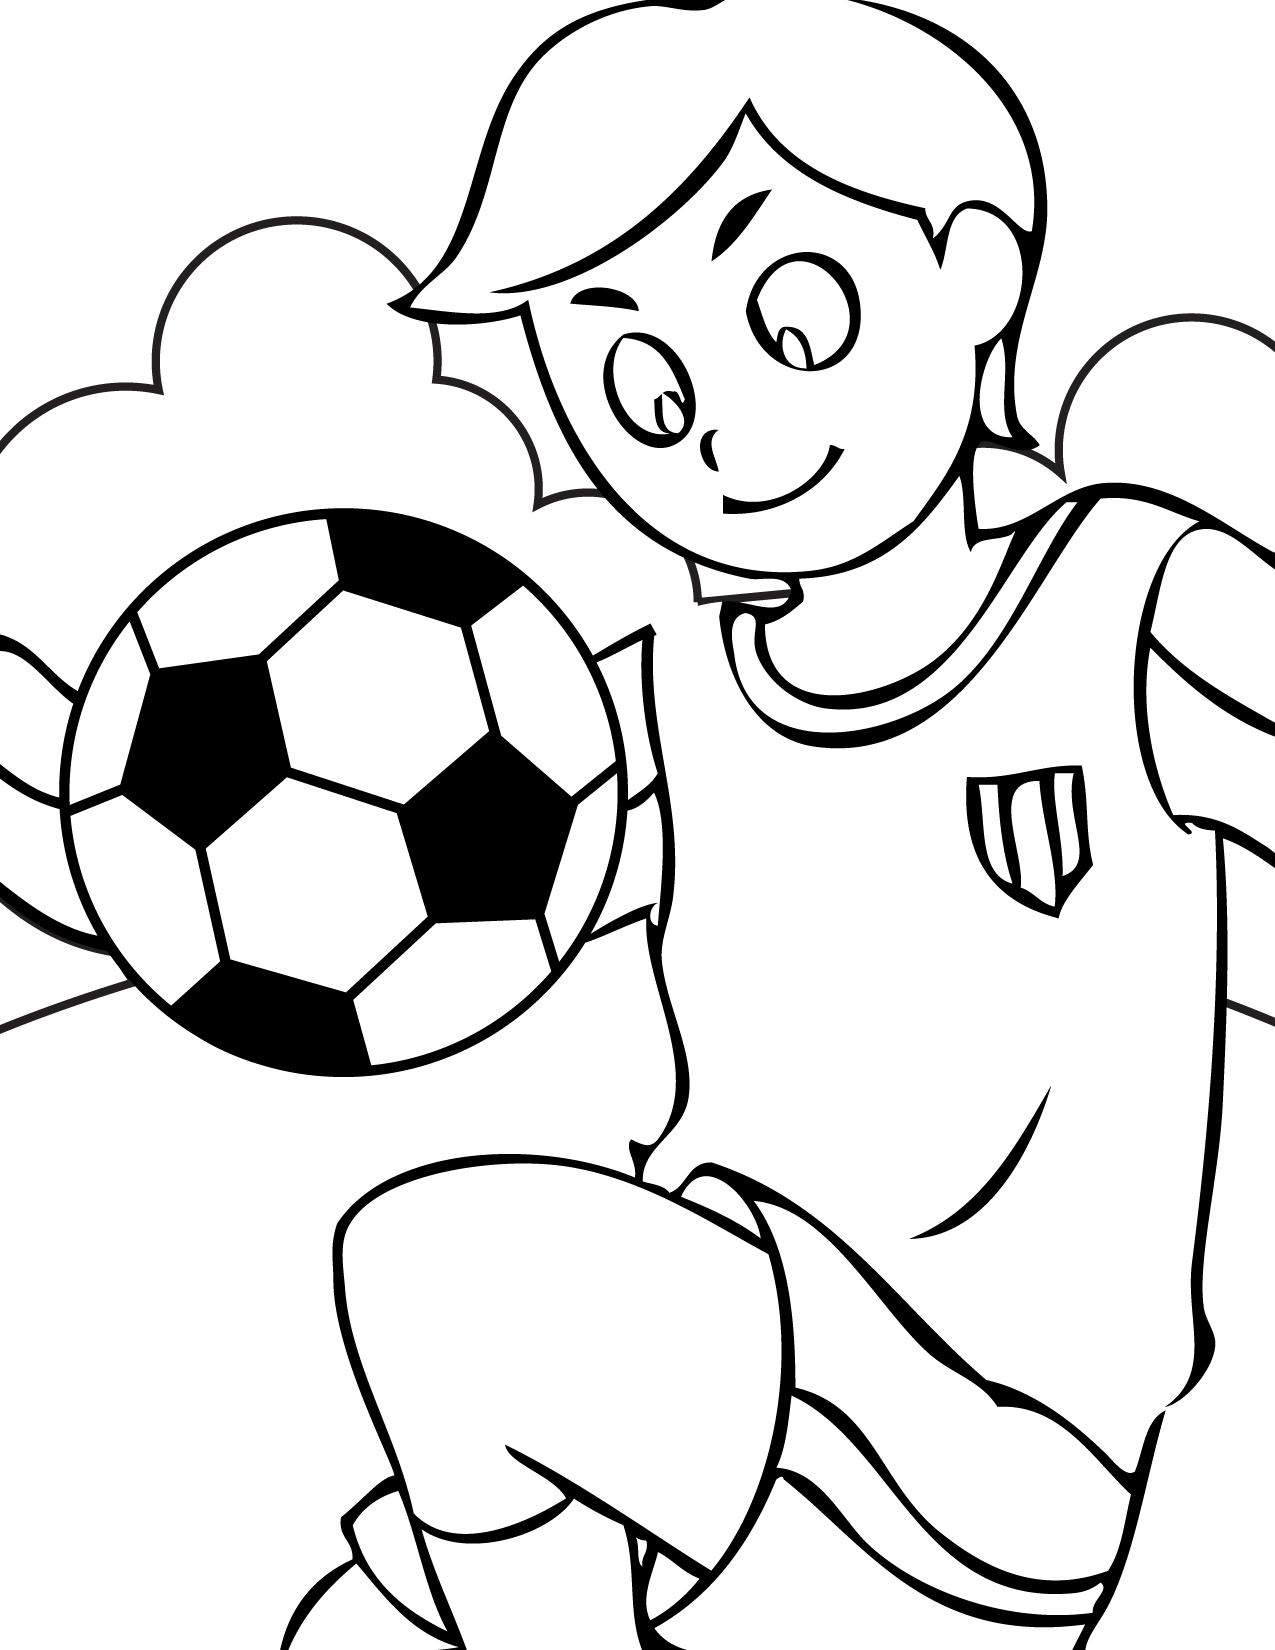 Free printable sports coloring pages for kids for Coloring pages for kids download